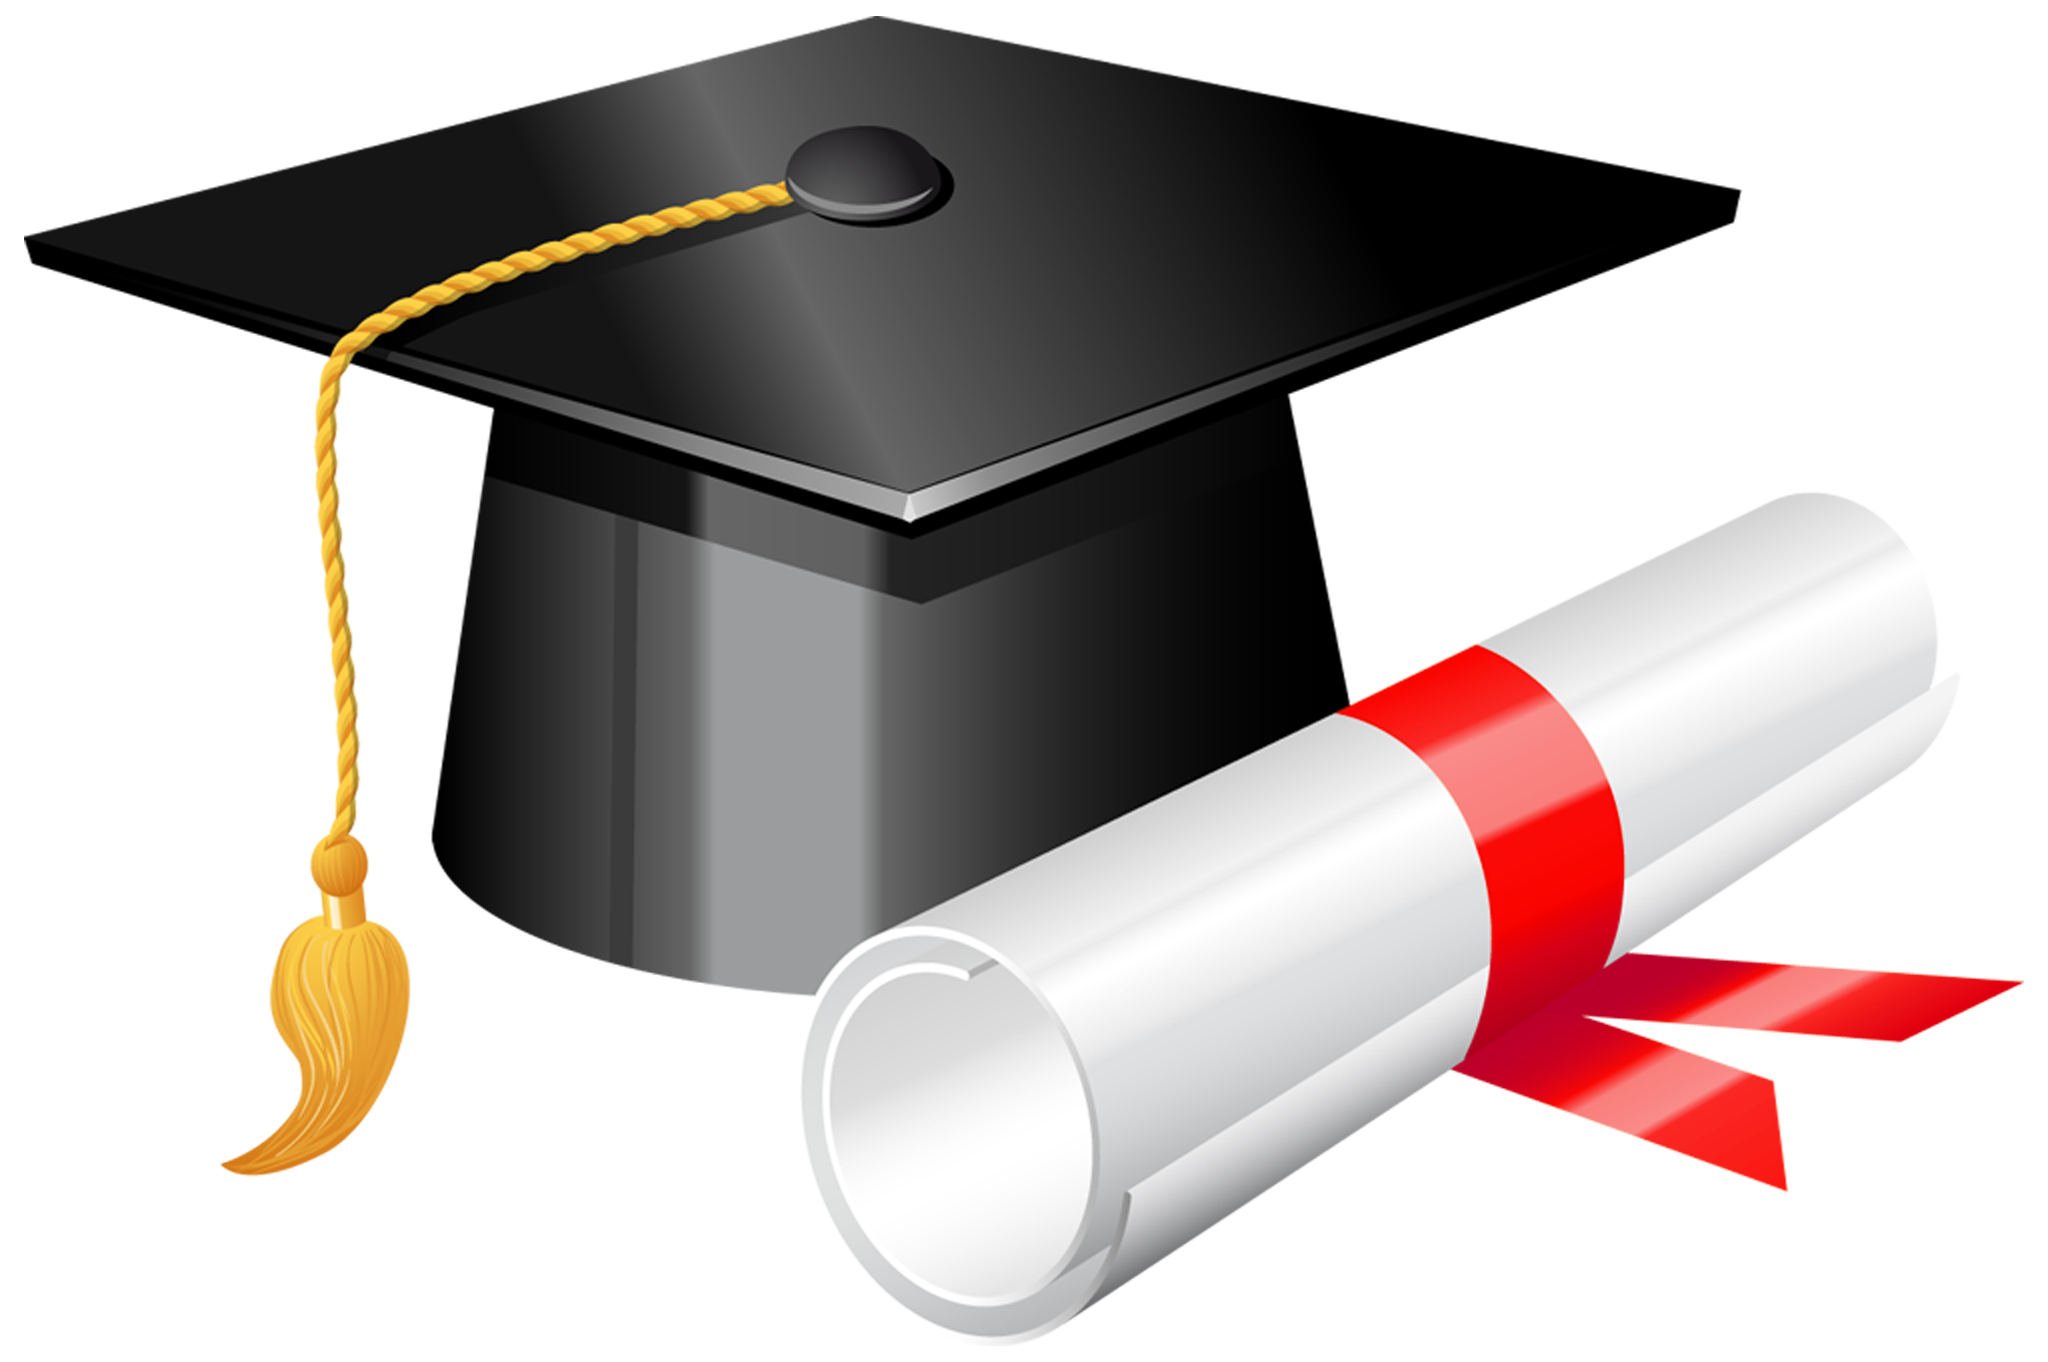 Diploma clipart. Graduation cap with png